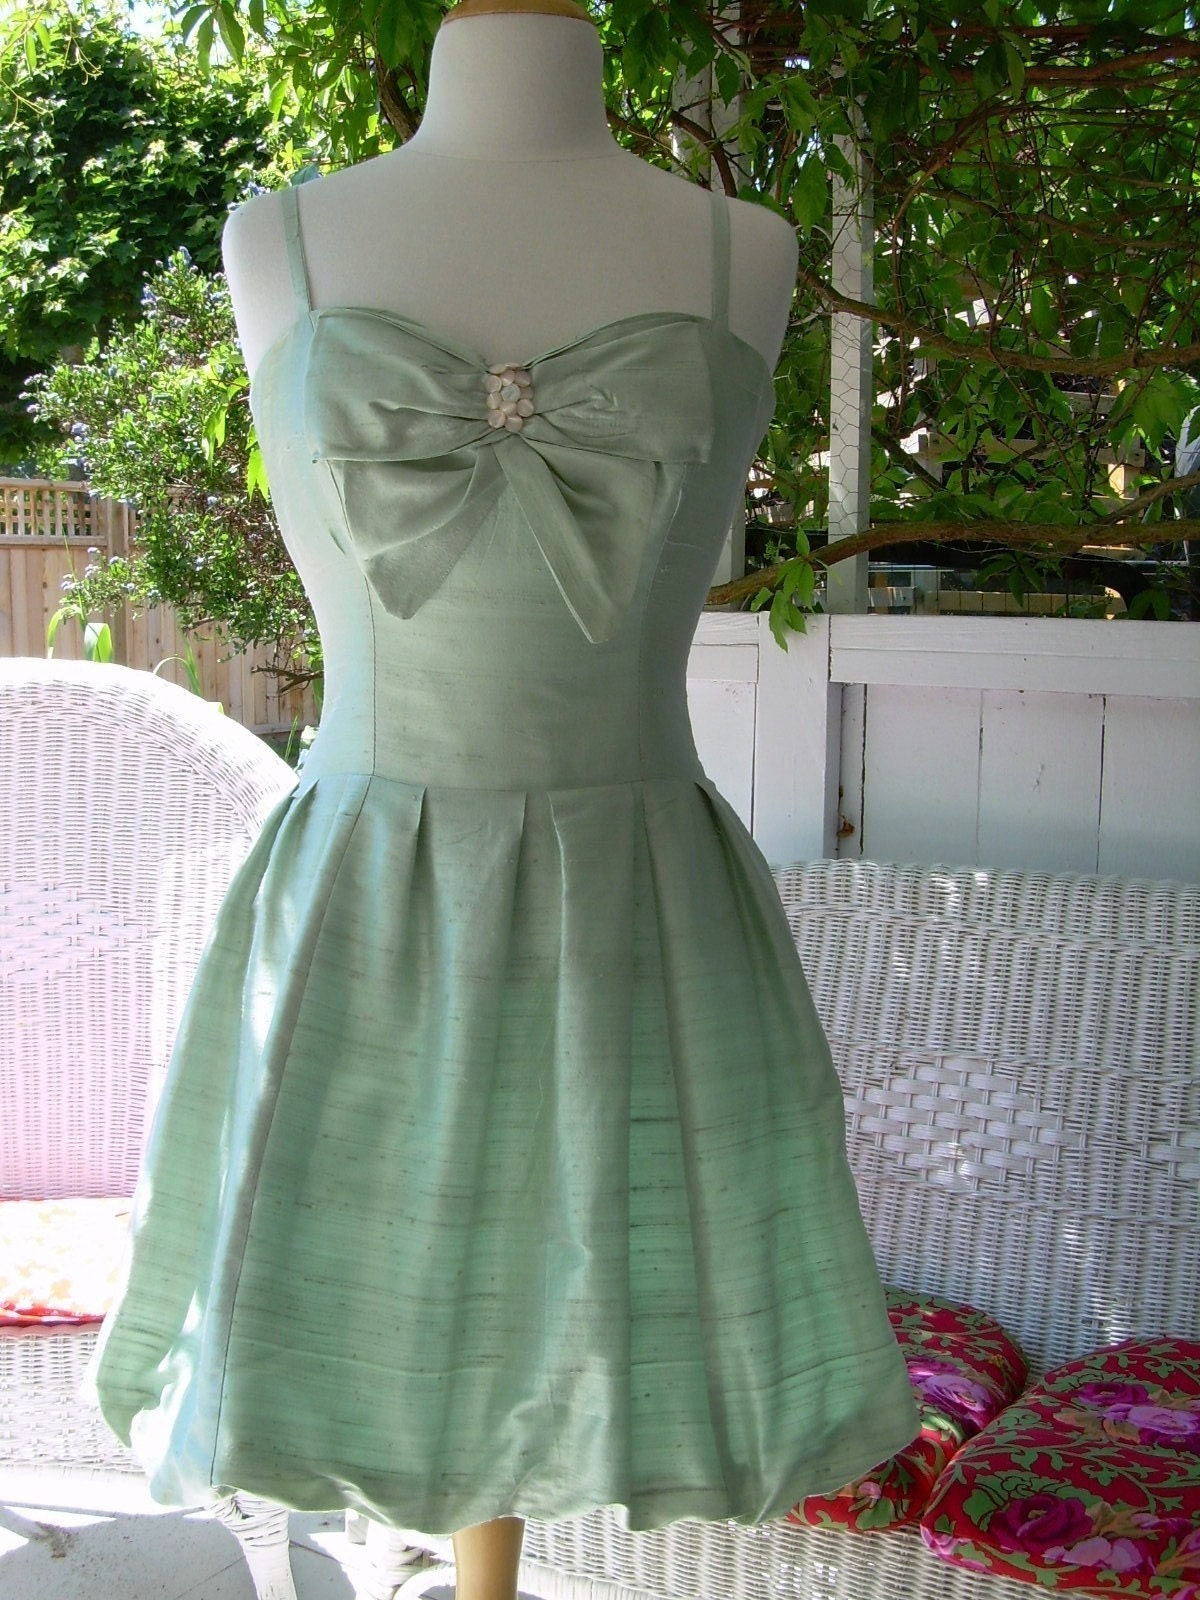 BRALESS SILK BOW PARTY DRESS CUSTOM SIZE AND COLOURS by janebonbon